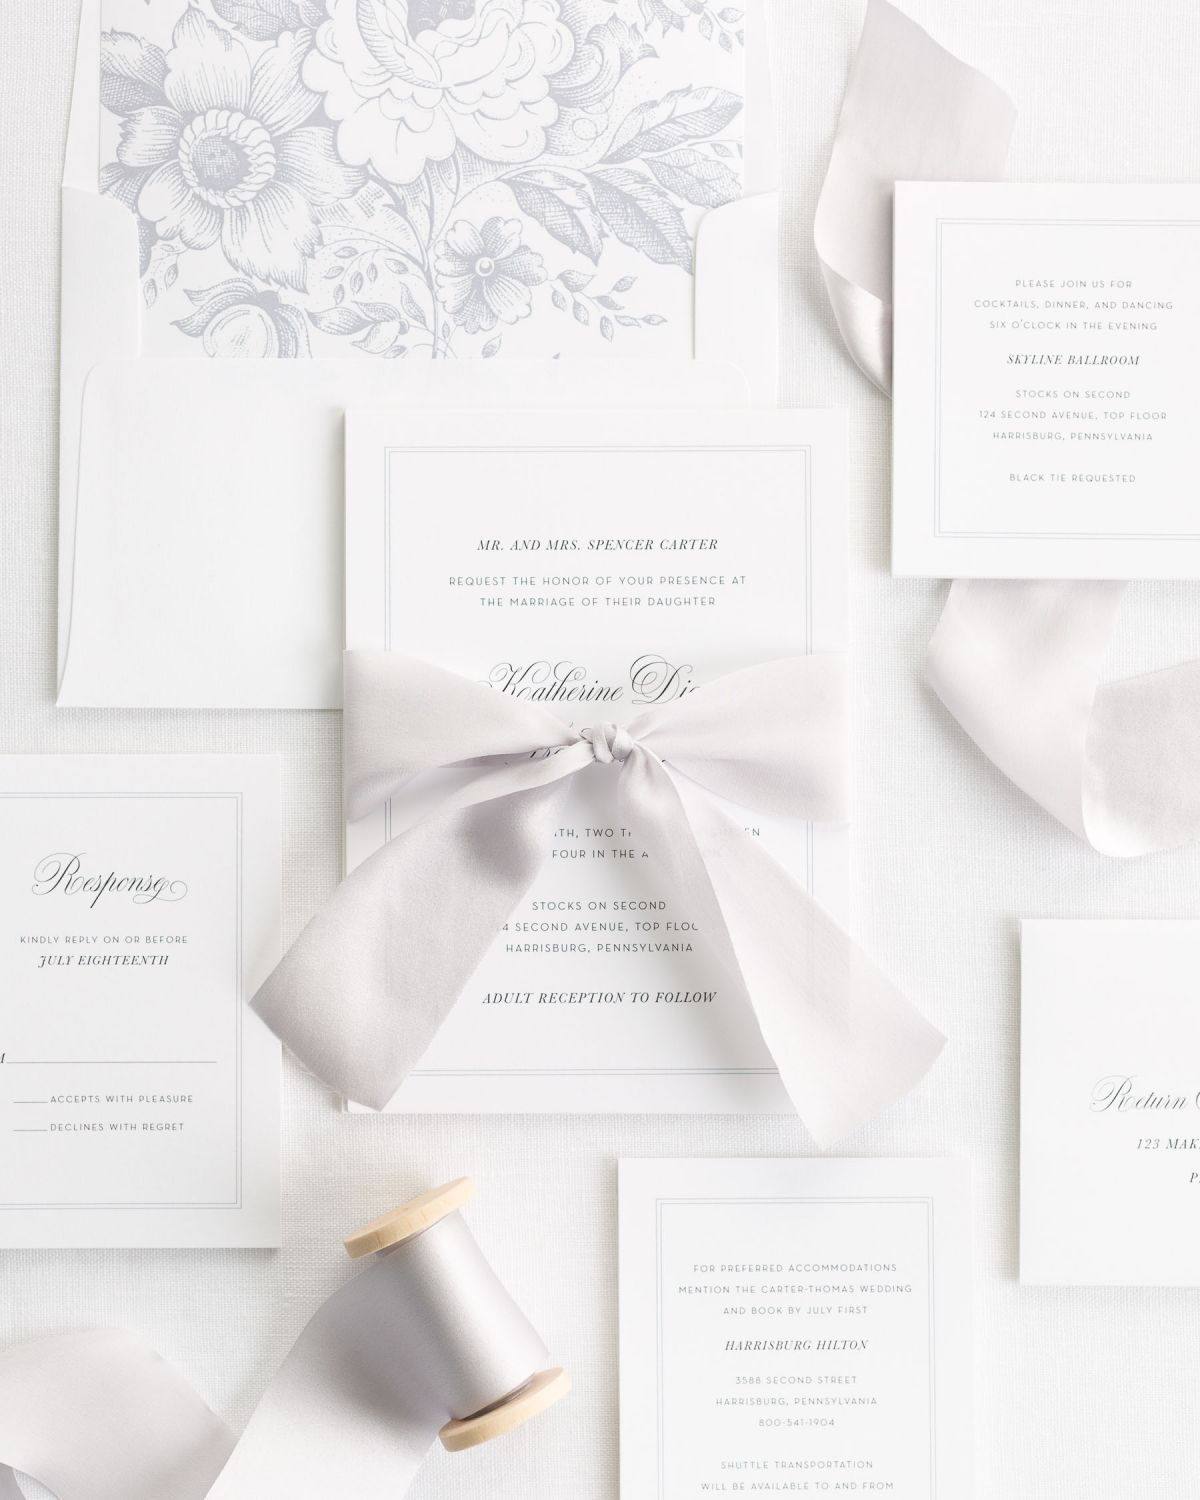 Complete Wedding Invitation Suite With Platinum Ribbon And